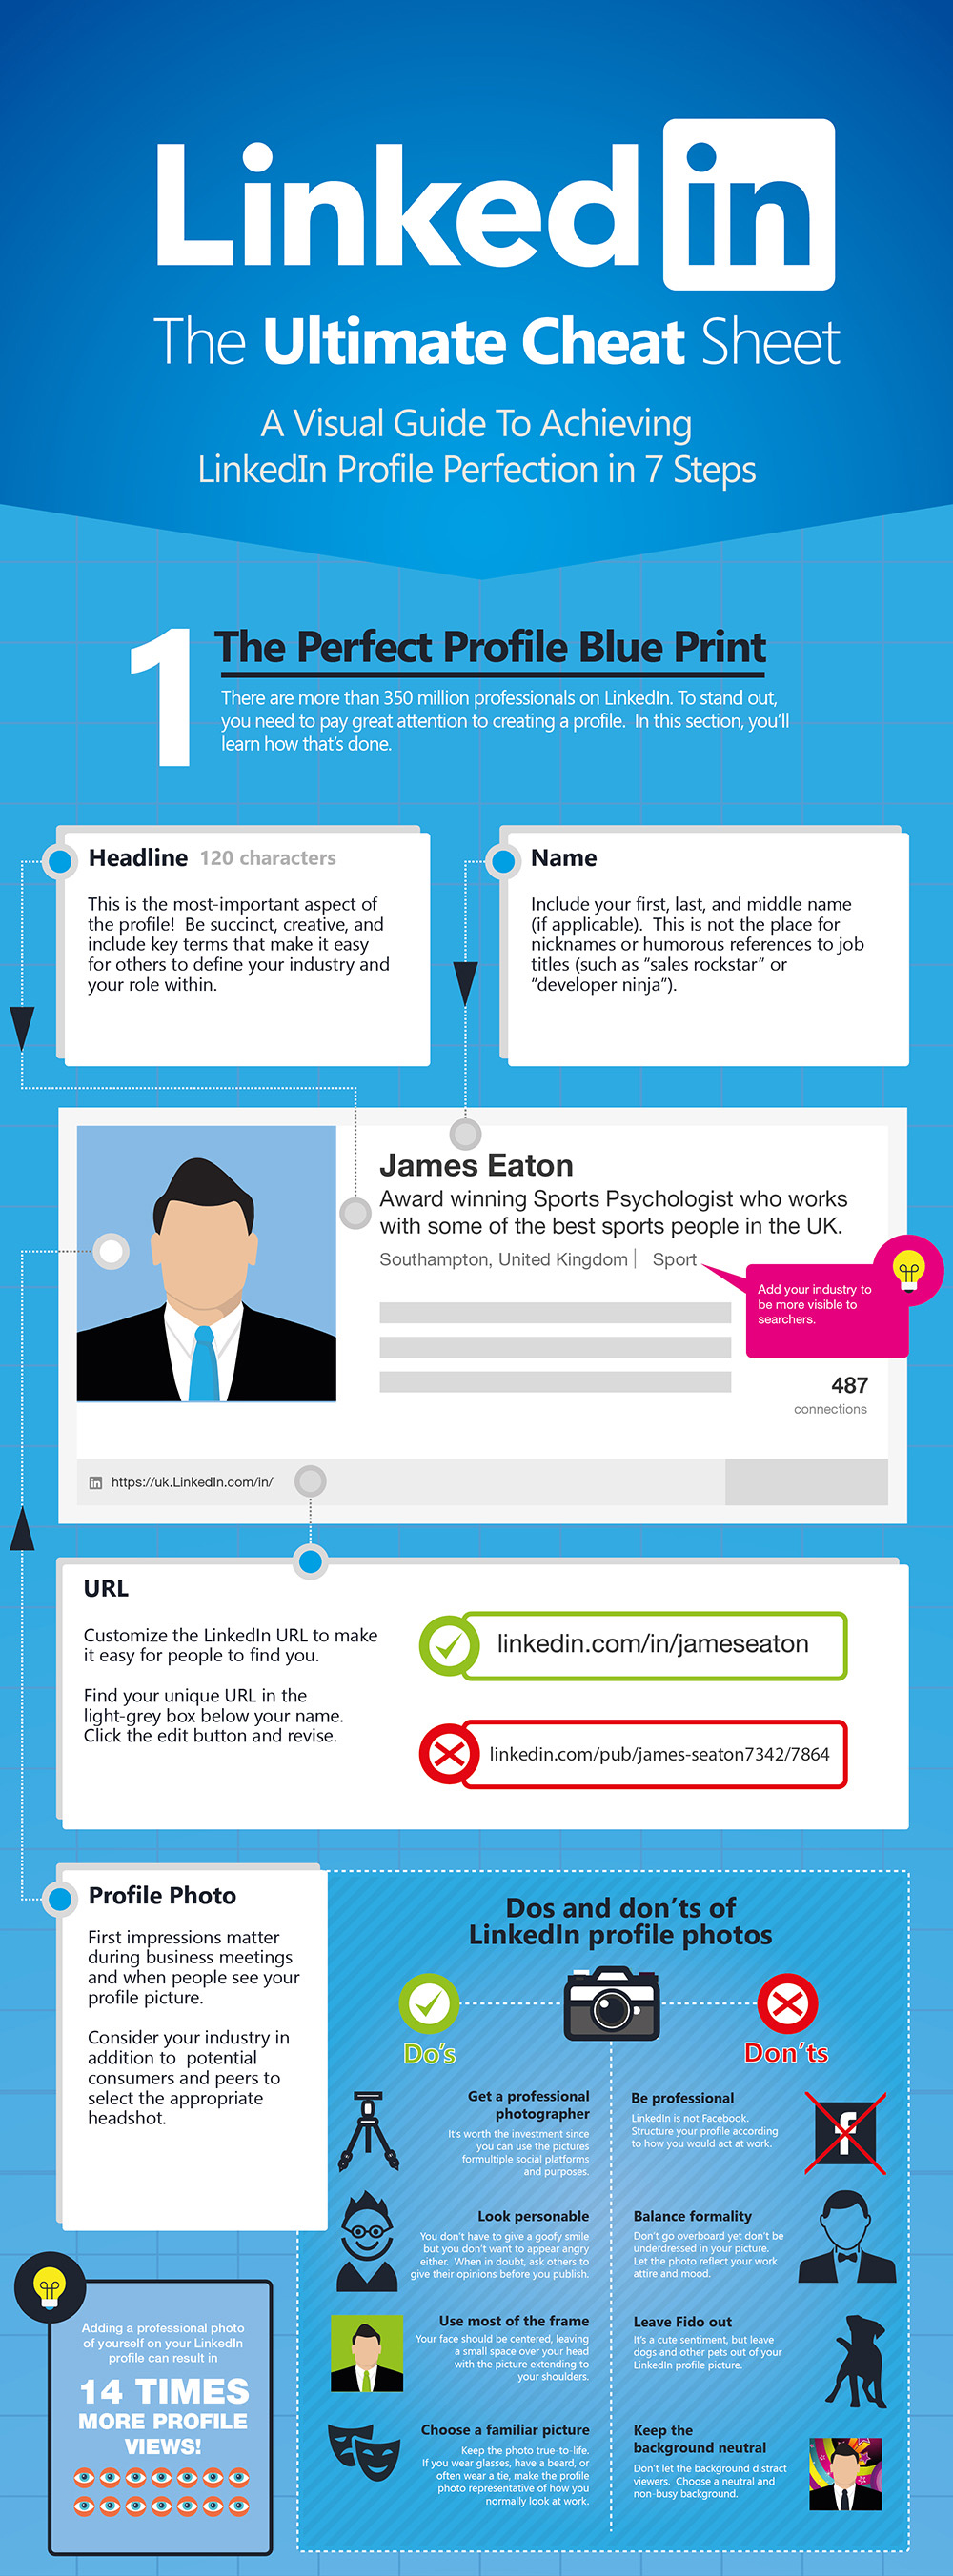 tips to achieve linkedin profile perfection tips tipsographic